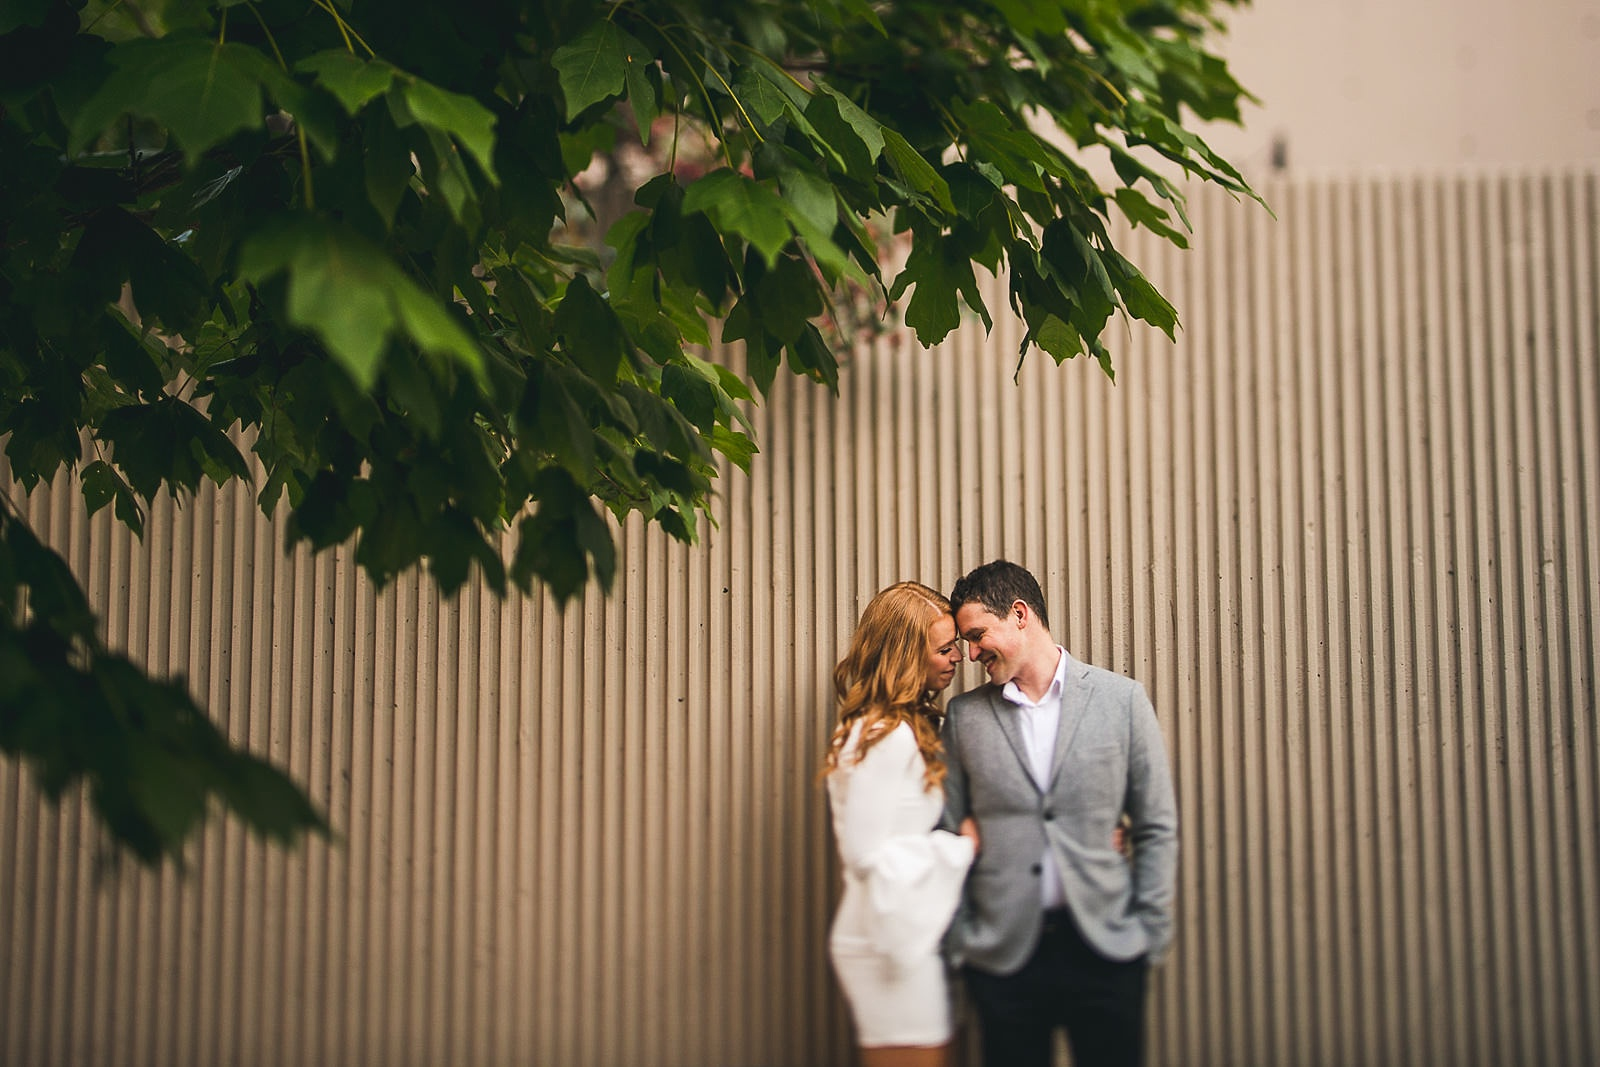 21 chicago engagement ideas for photos - Rooftop Chicago Engagement Session // Aubyn + Danny